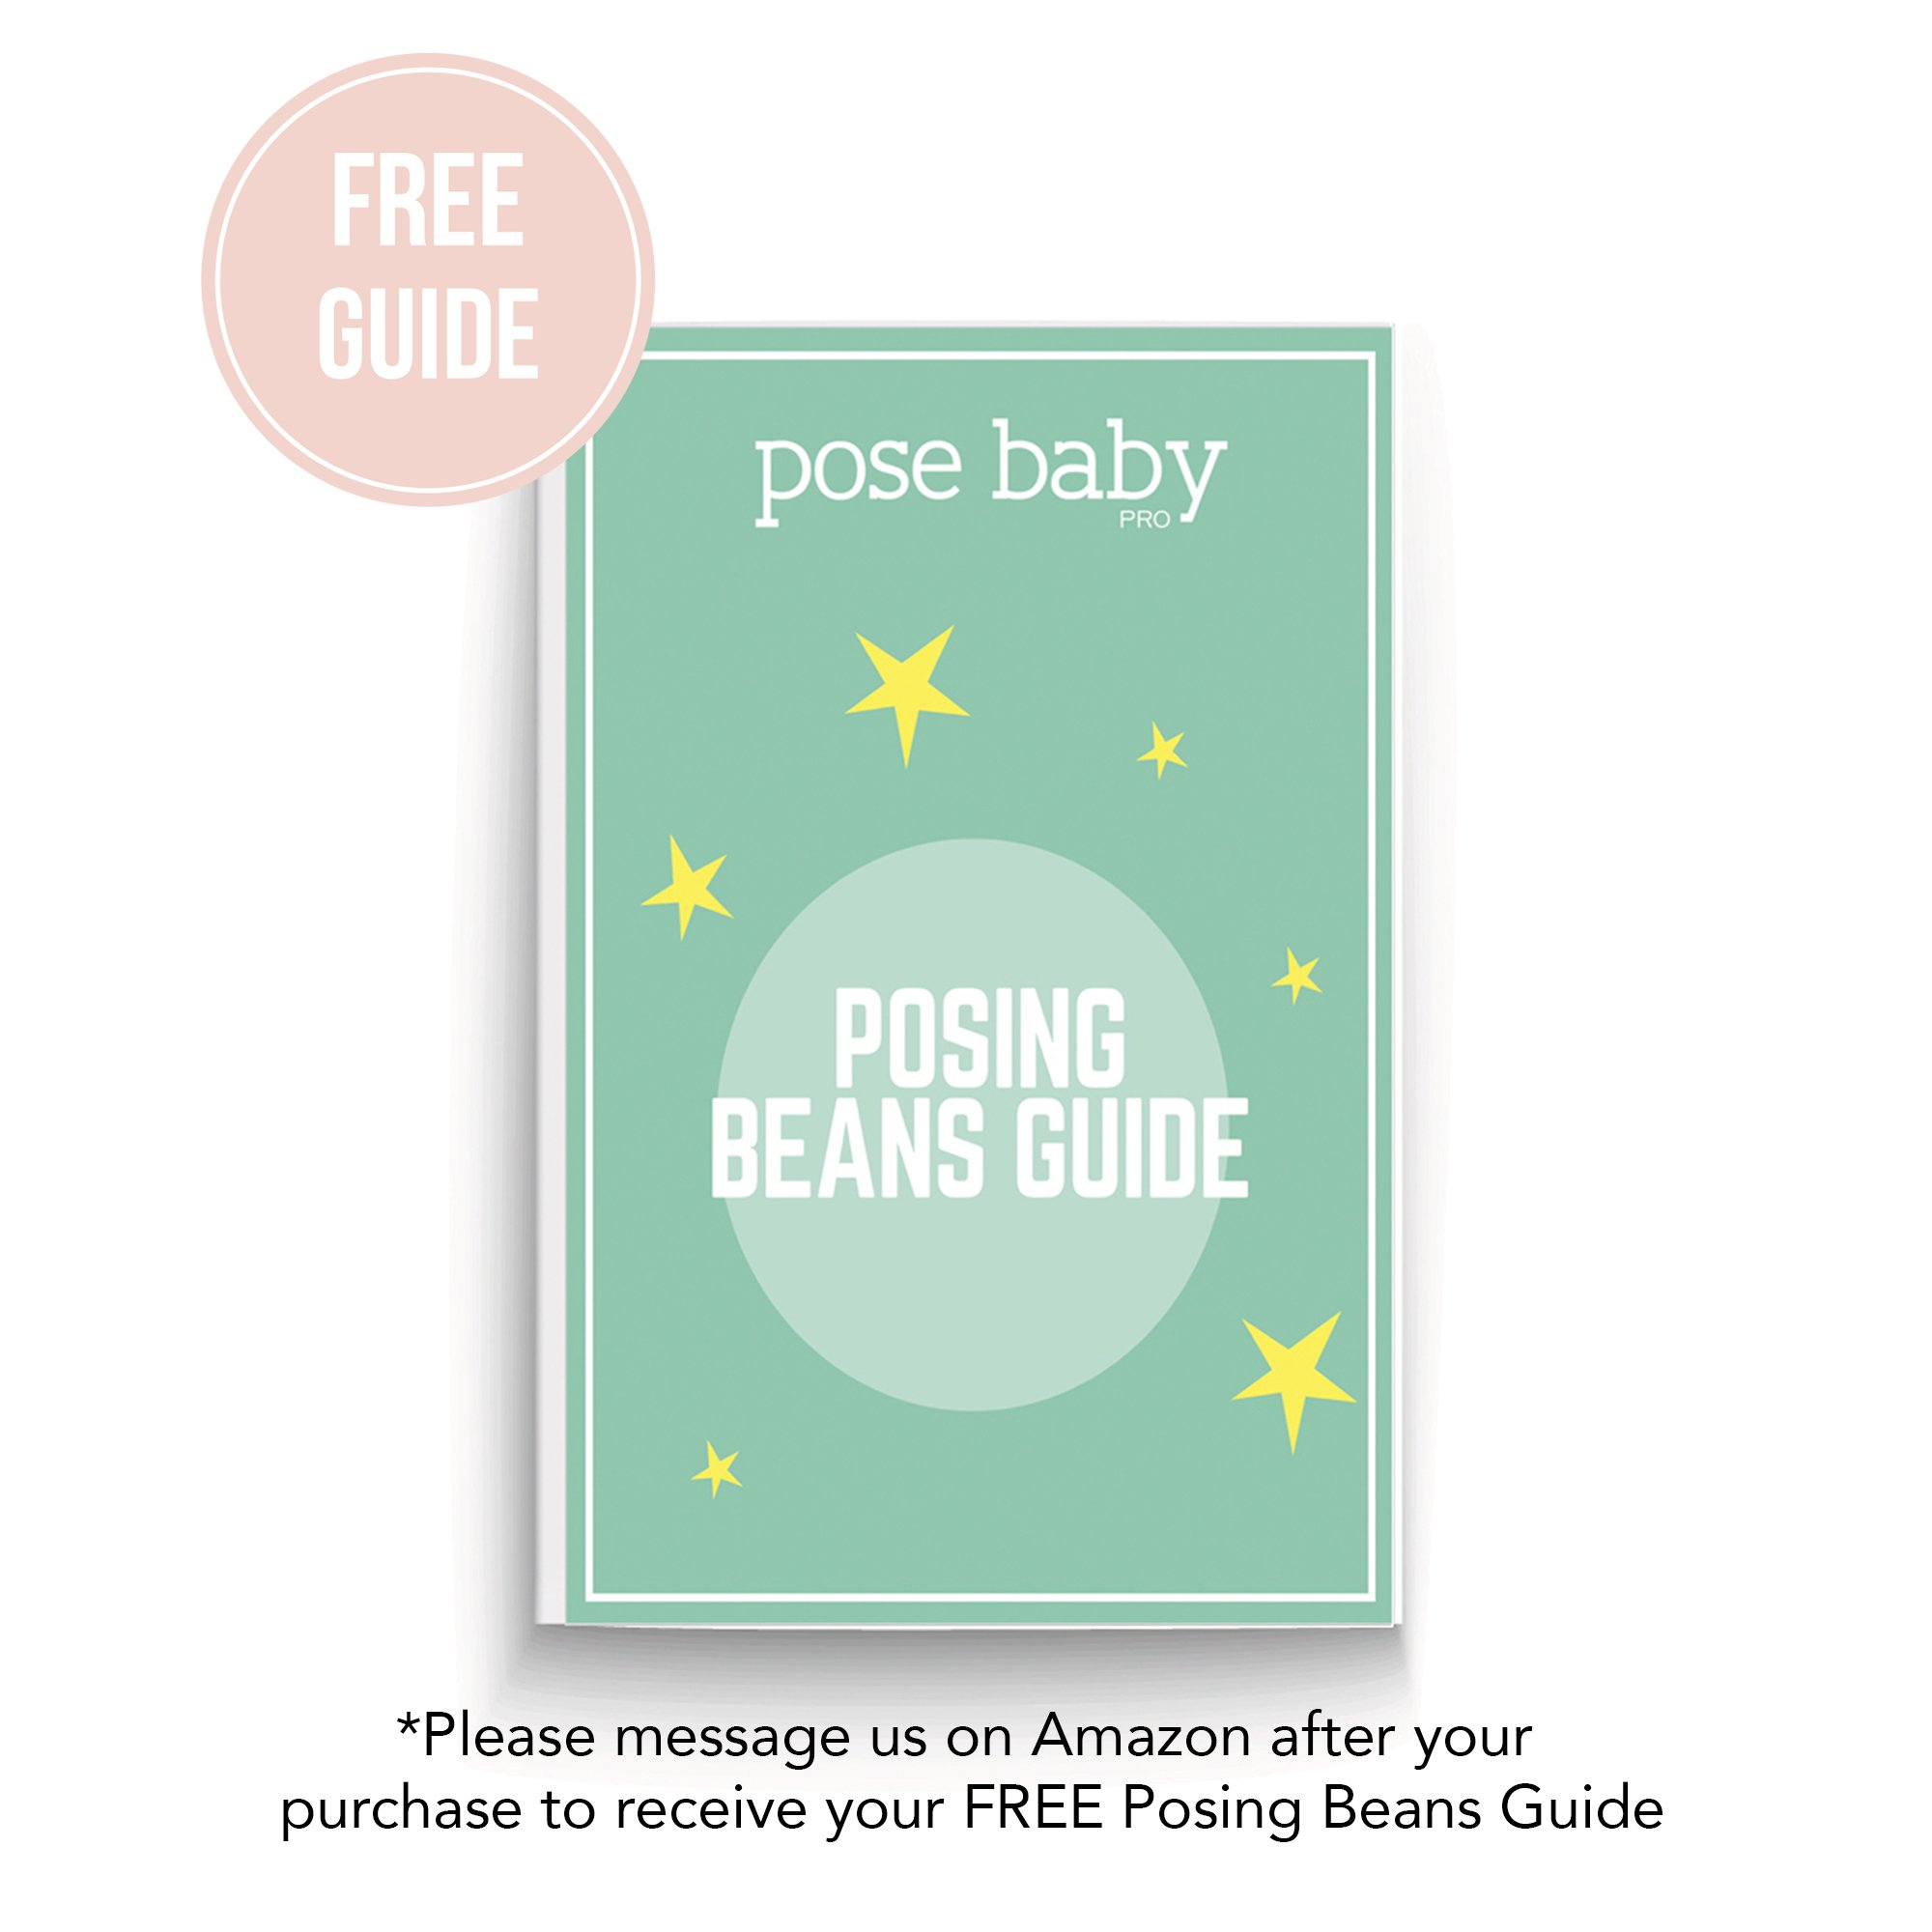 PoseBaby Pro Newborn Photography Posing Beans | 5 Piece Positioner Set for Posing Baby | Professional Posing Aid | Baby Photo Prop & Contoured Posing Pillow | Pre-Filled Newborn Photography Prop by Pose Baby Pro (Image #7)